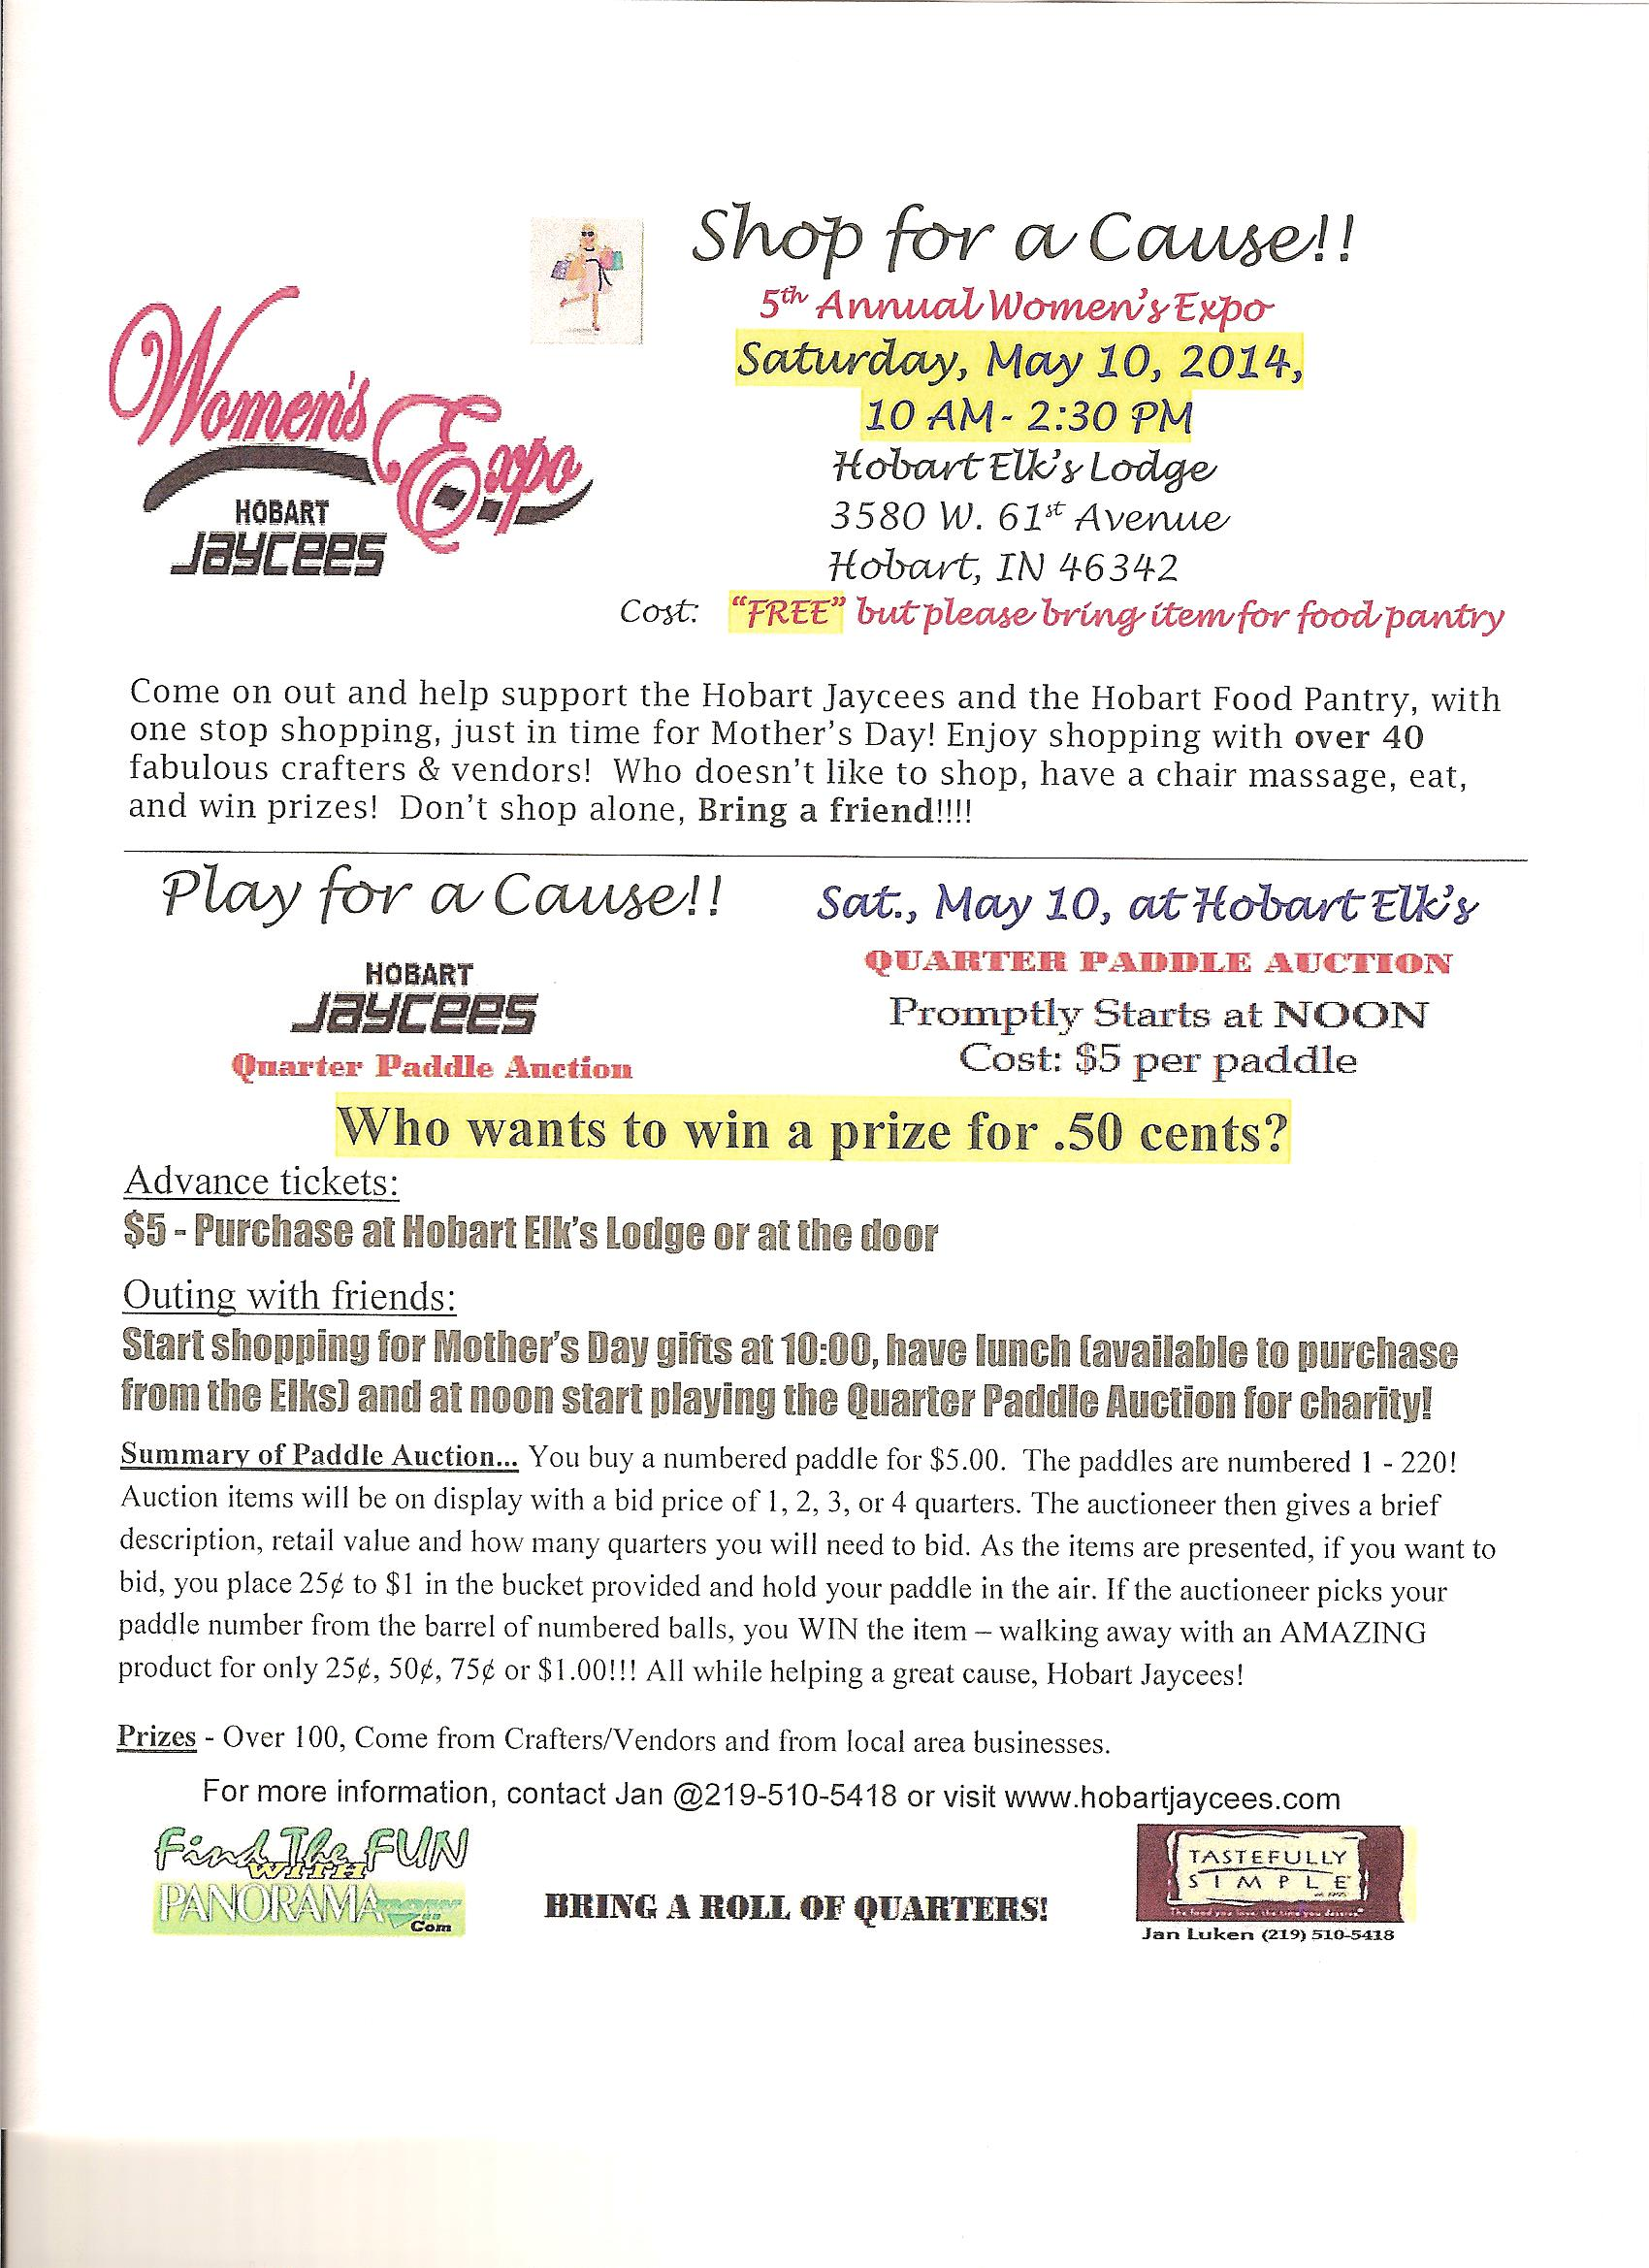 Hobart Jaycees Women's Expo & Quarter Paddle Auction on May 10